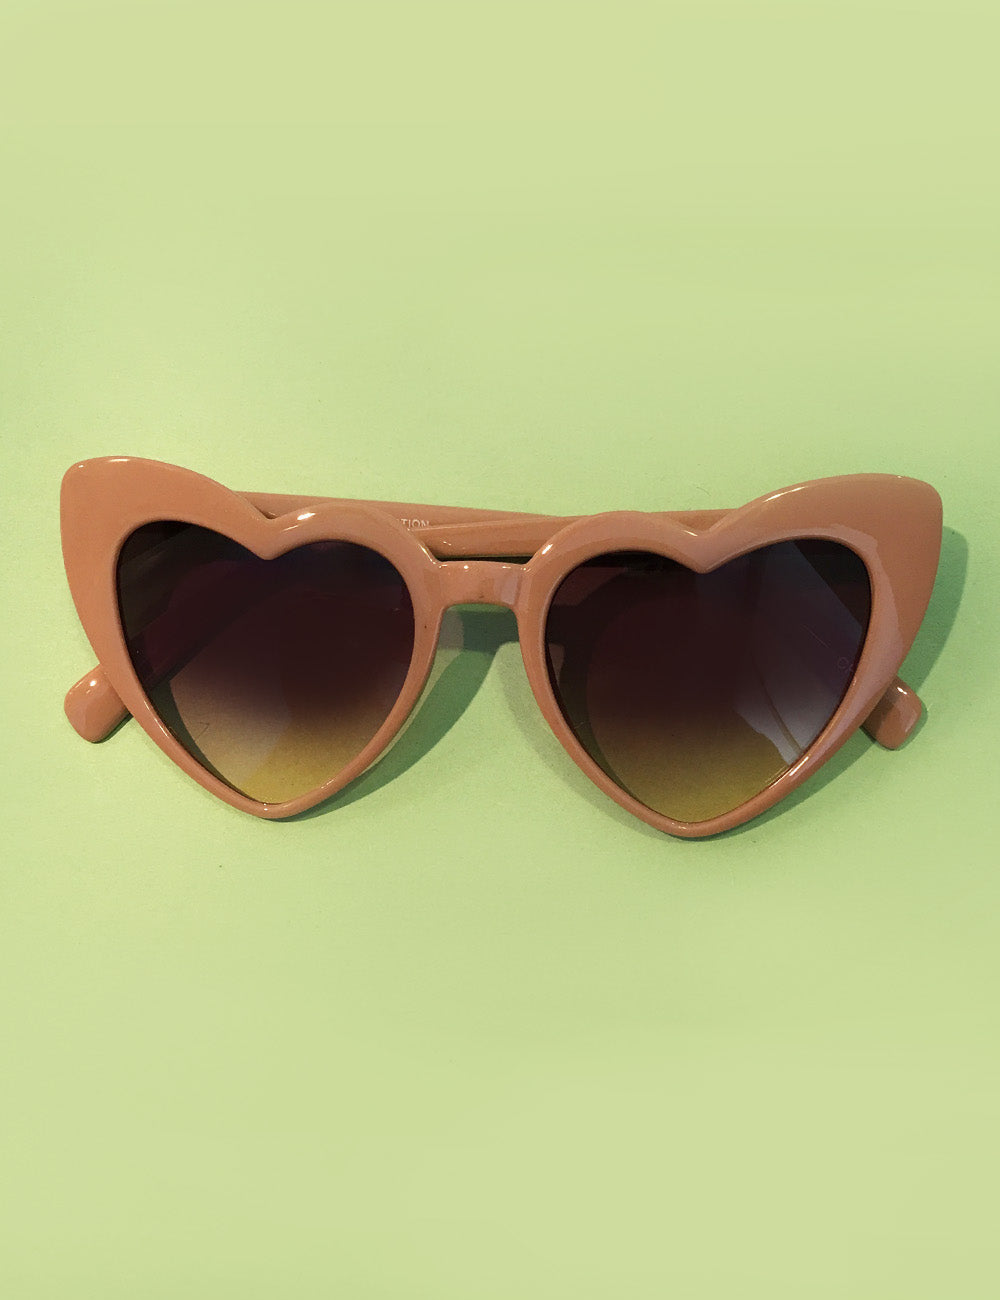 Neutral Tan Heart Shaped Retro Sunglasses